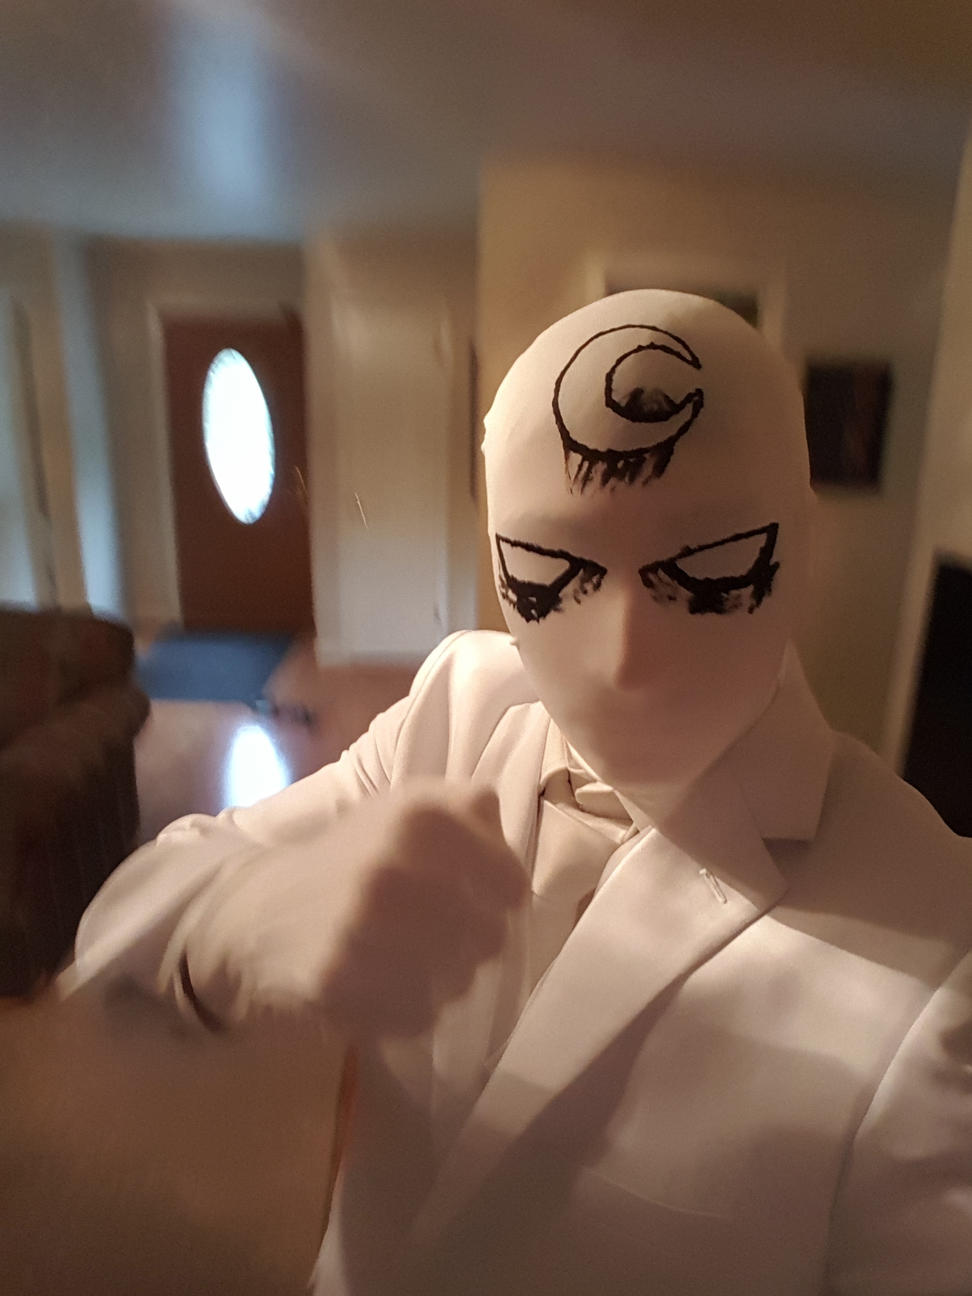 Joe Hogan as Moon Knight